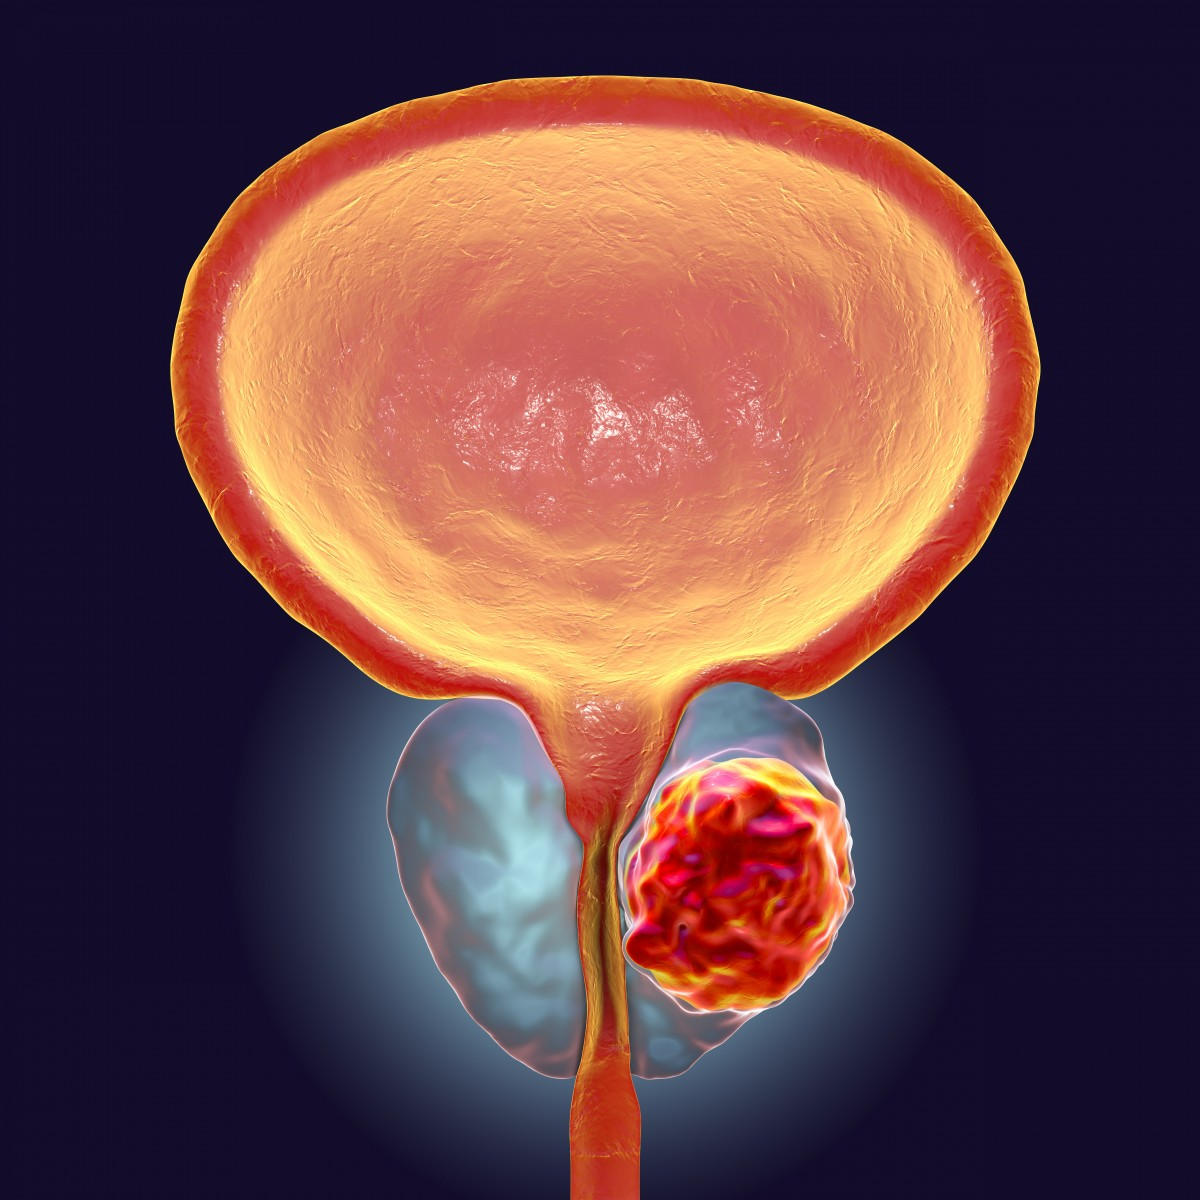 Prostate cancer cells are depicted in the circle on the lower right. Illustration by Getty Images.